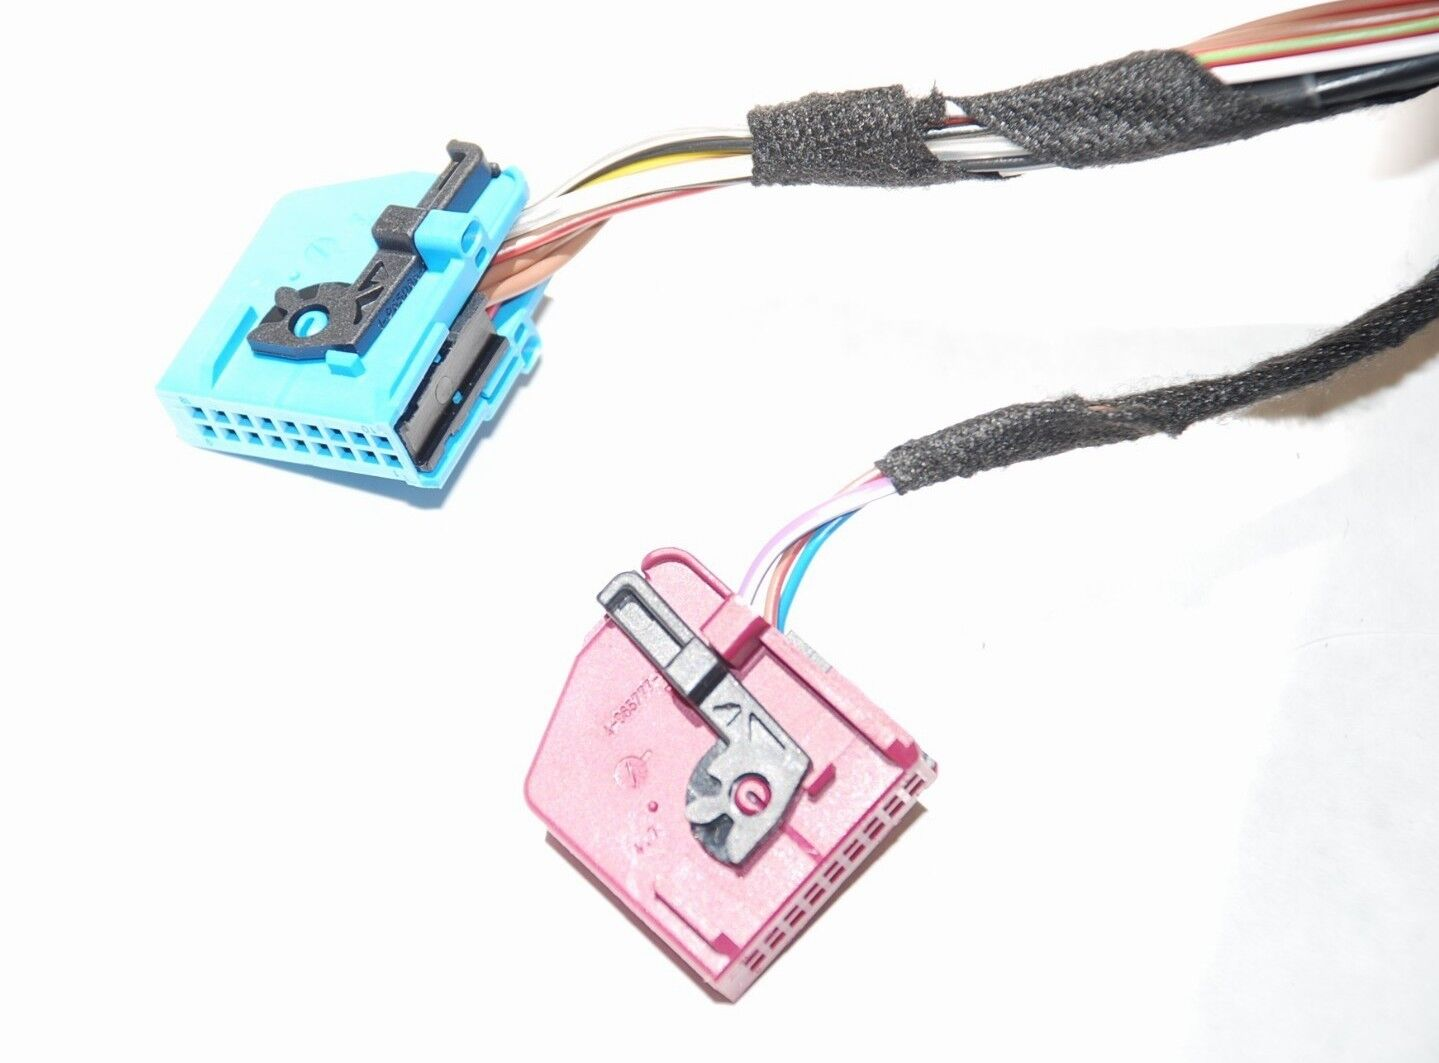 bmw e46 3 series m3 navigation system retrofit wiring harness rh ebay com bmw e46 navigation wiring diagram BMW Navigation System